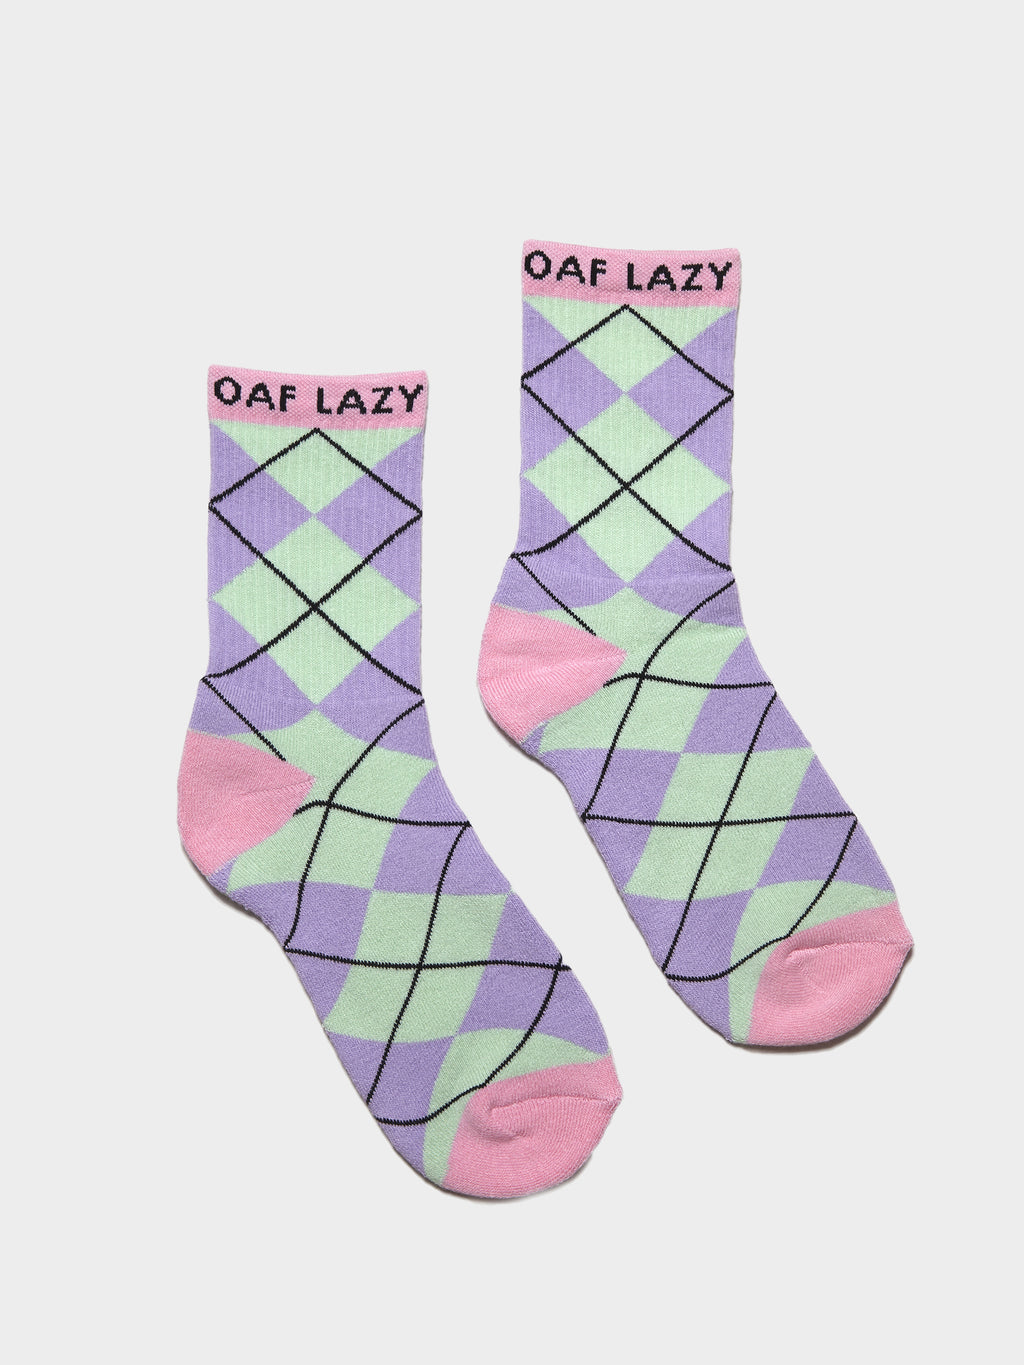 Lazy Oaf Lazy Argyle Socks